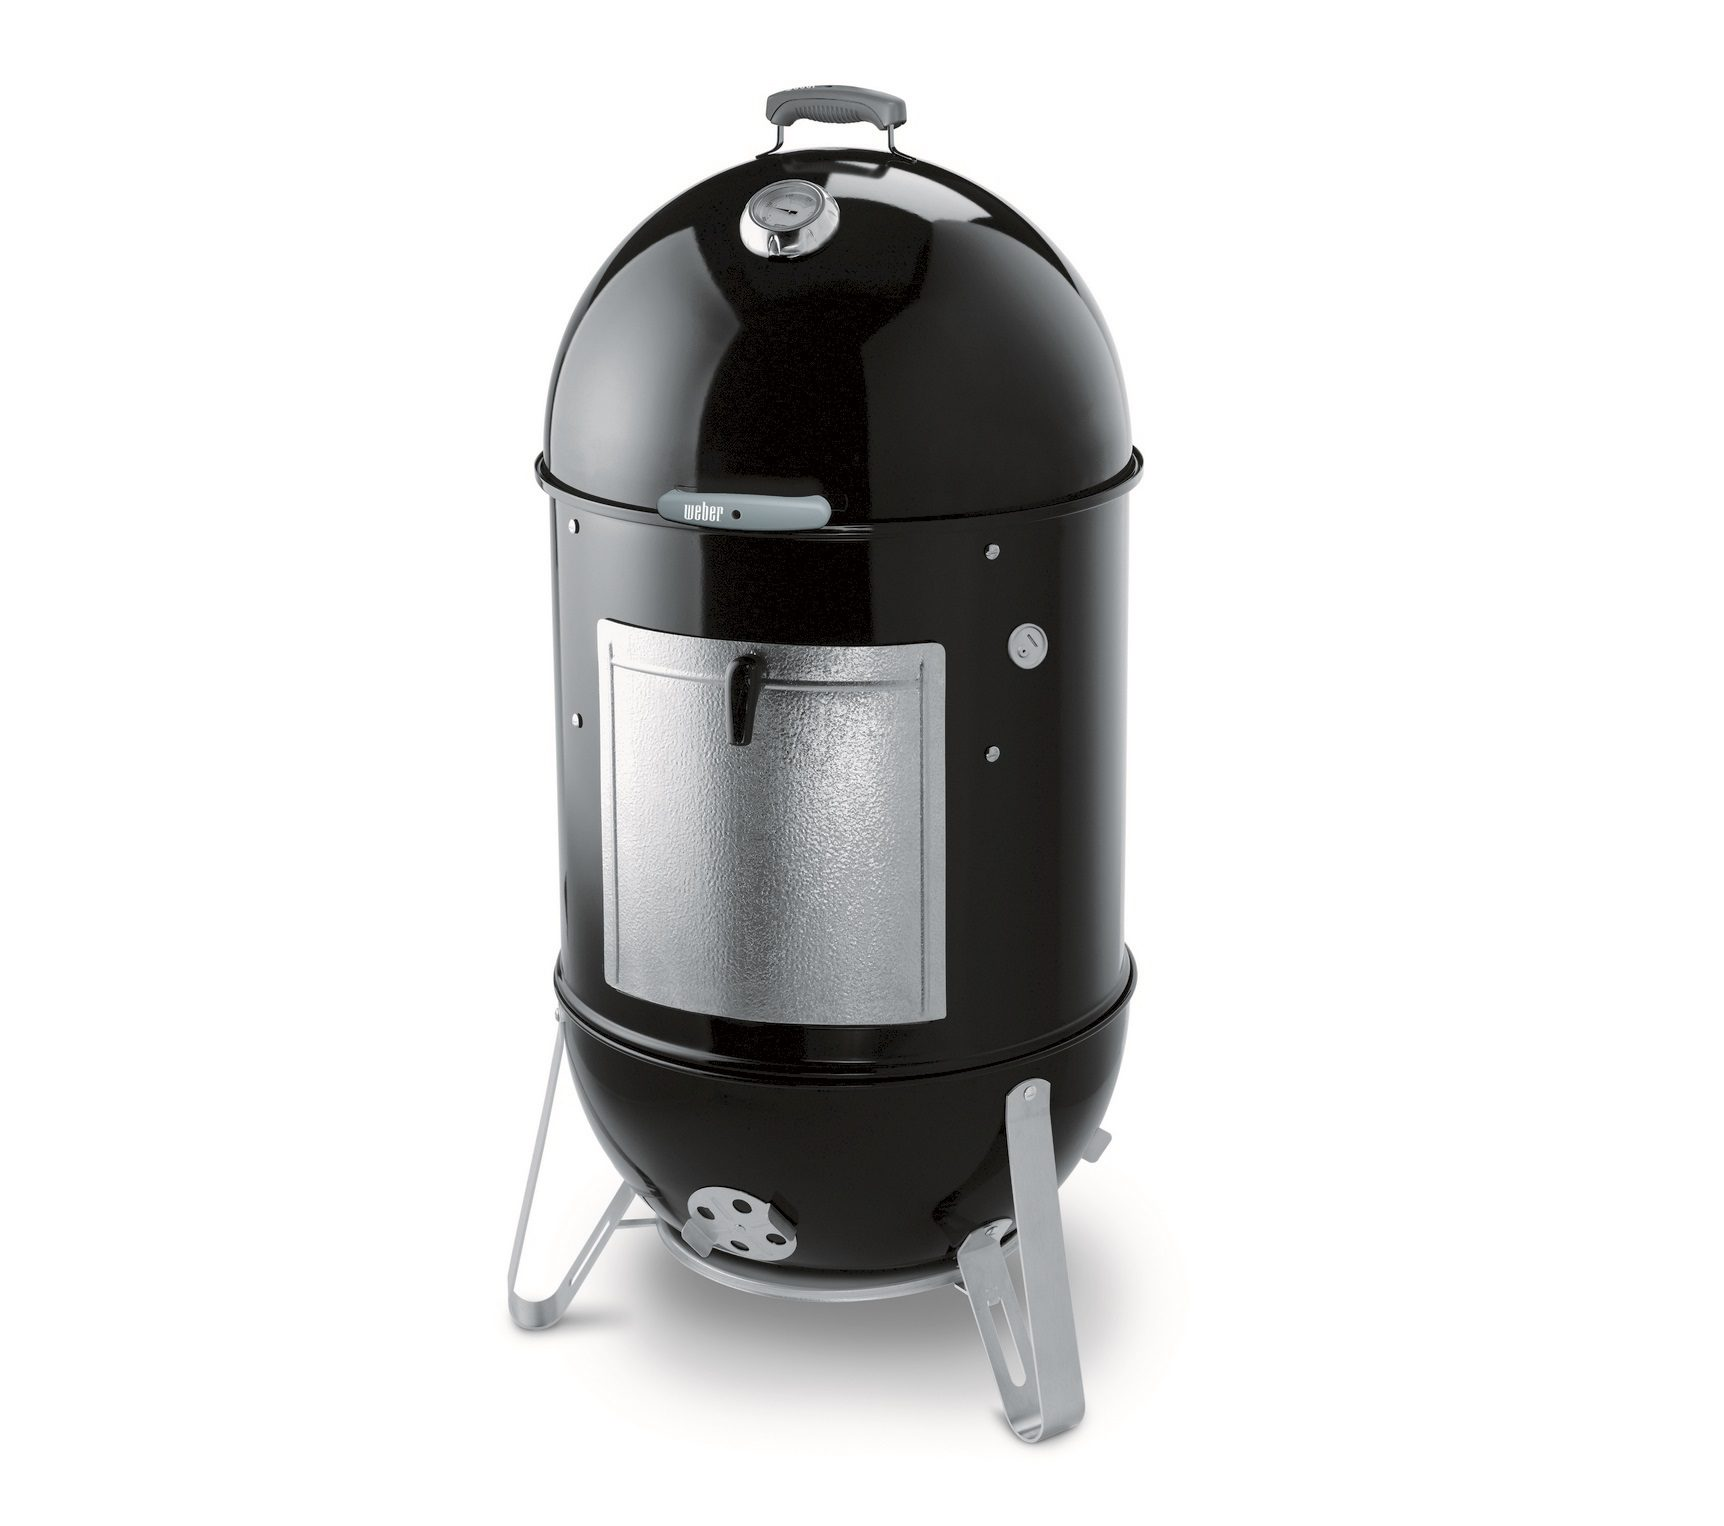 weber-57cm-smokey-mountain-cooker-731004